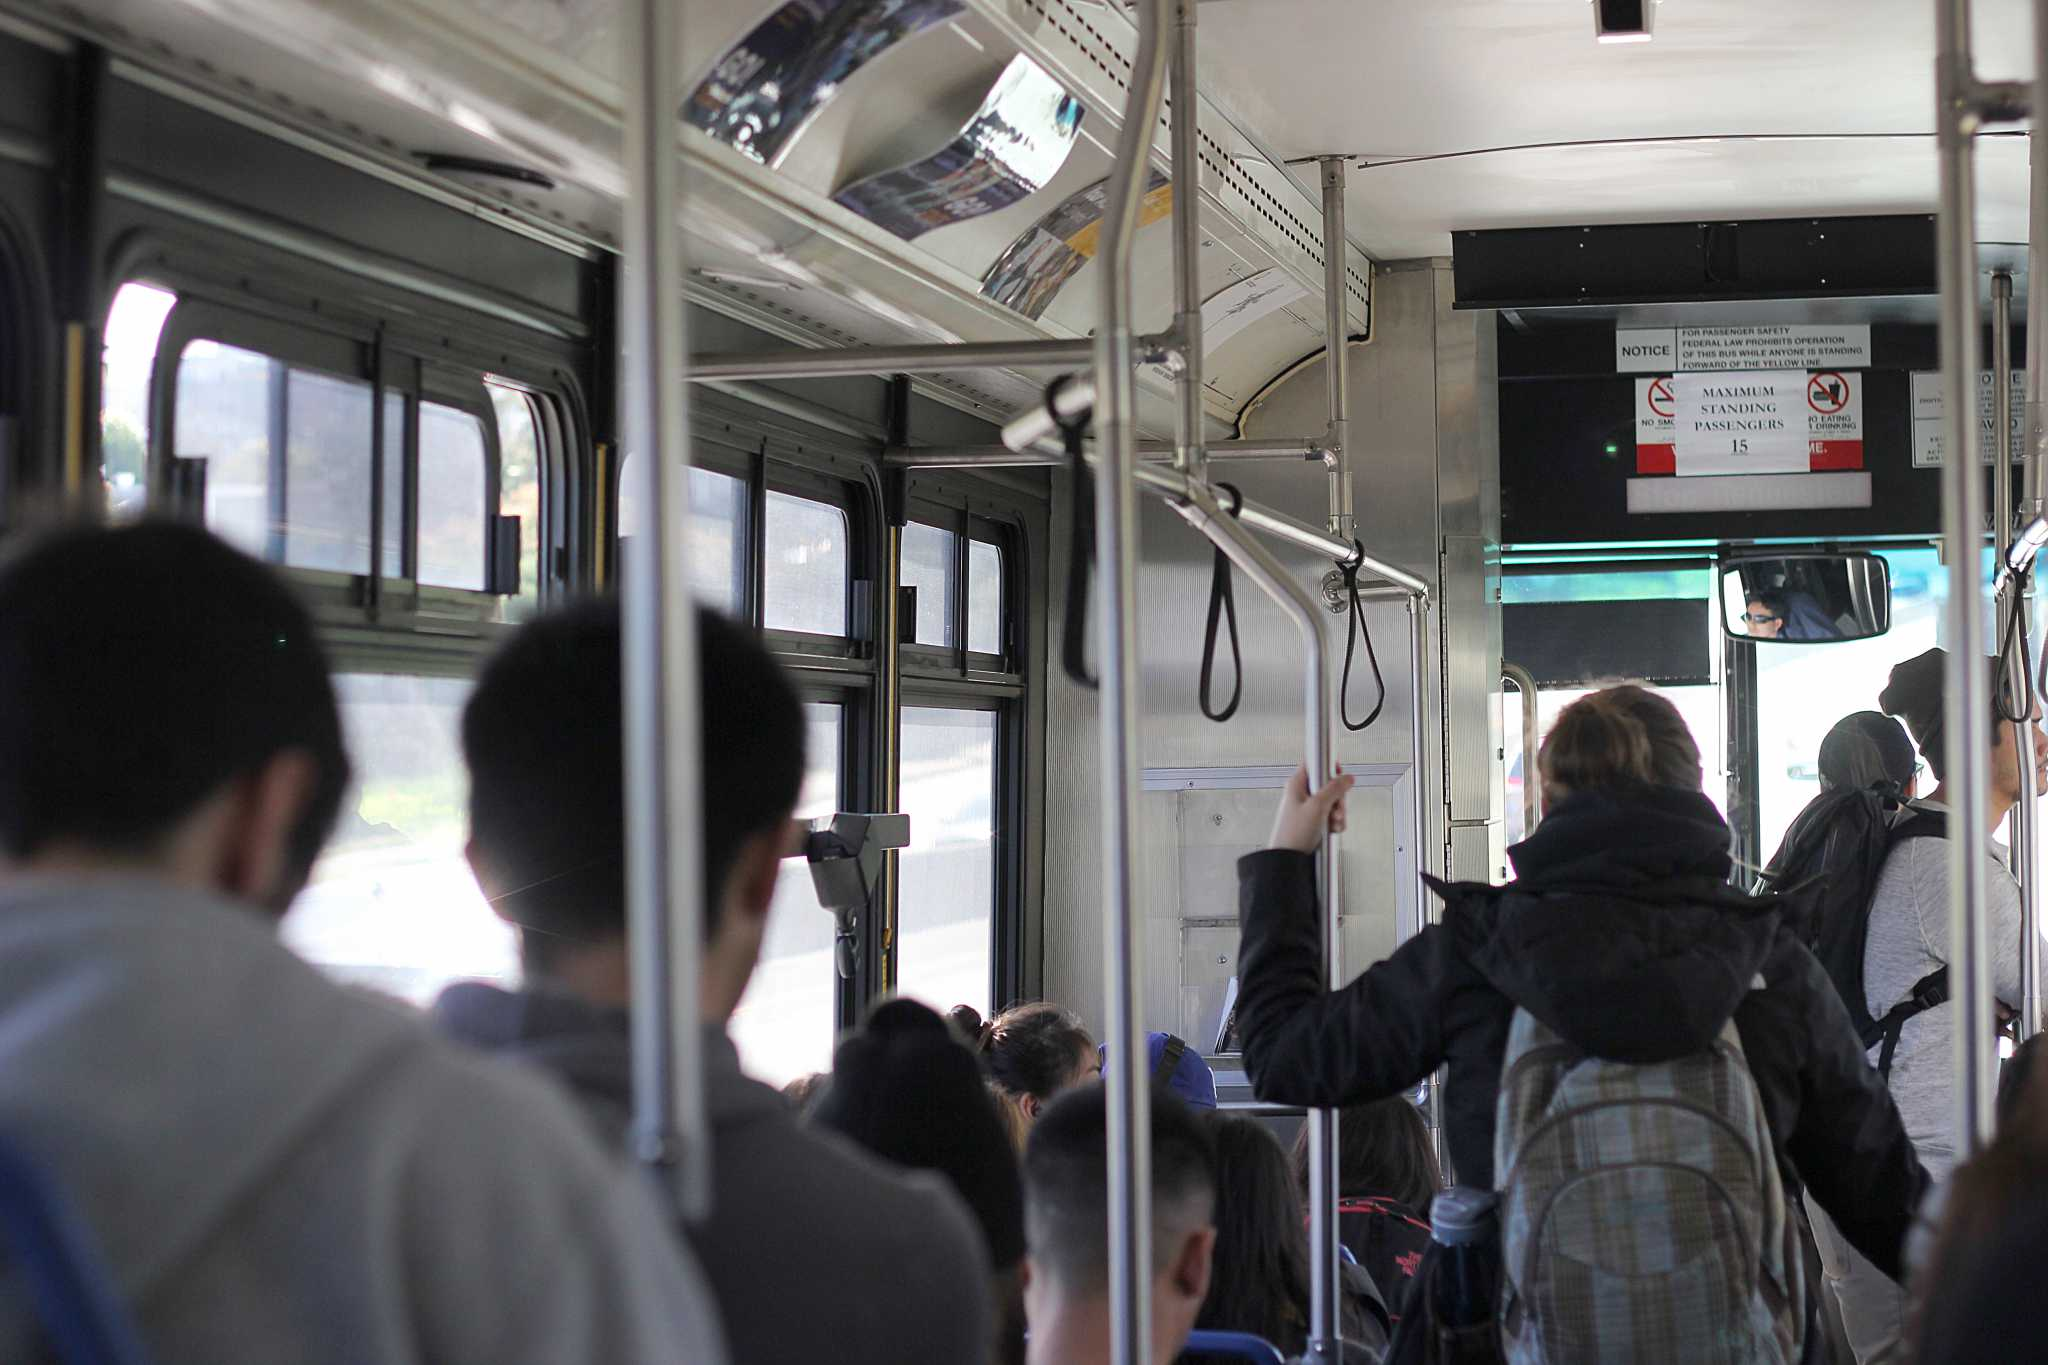 002: Students fill a SF State shuttle bus outside of SF State in San Francisco, Calif on Monday, Feb. 22, 2016. Students have raised safety concerns about the over crowded Muni and college shuttle buses that they take to and from SF State. (George Morin / Xpress)